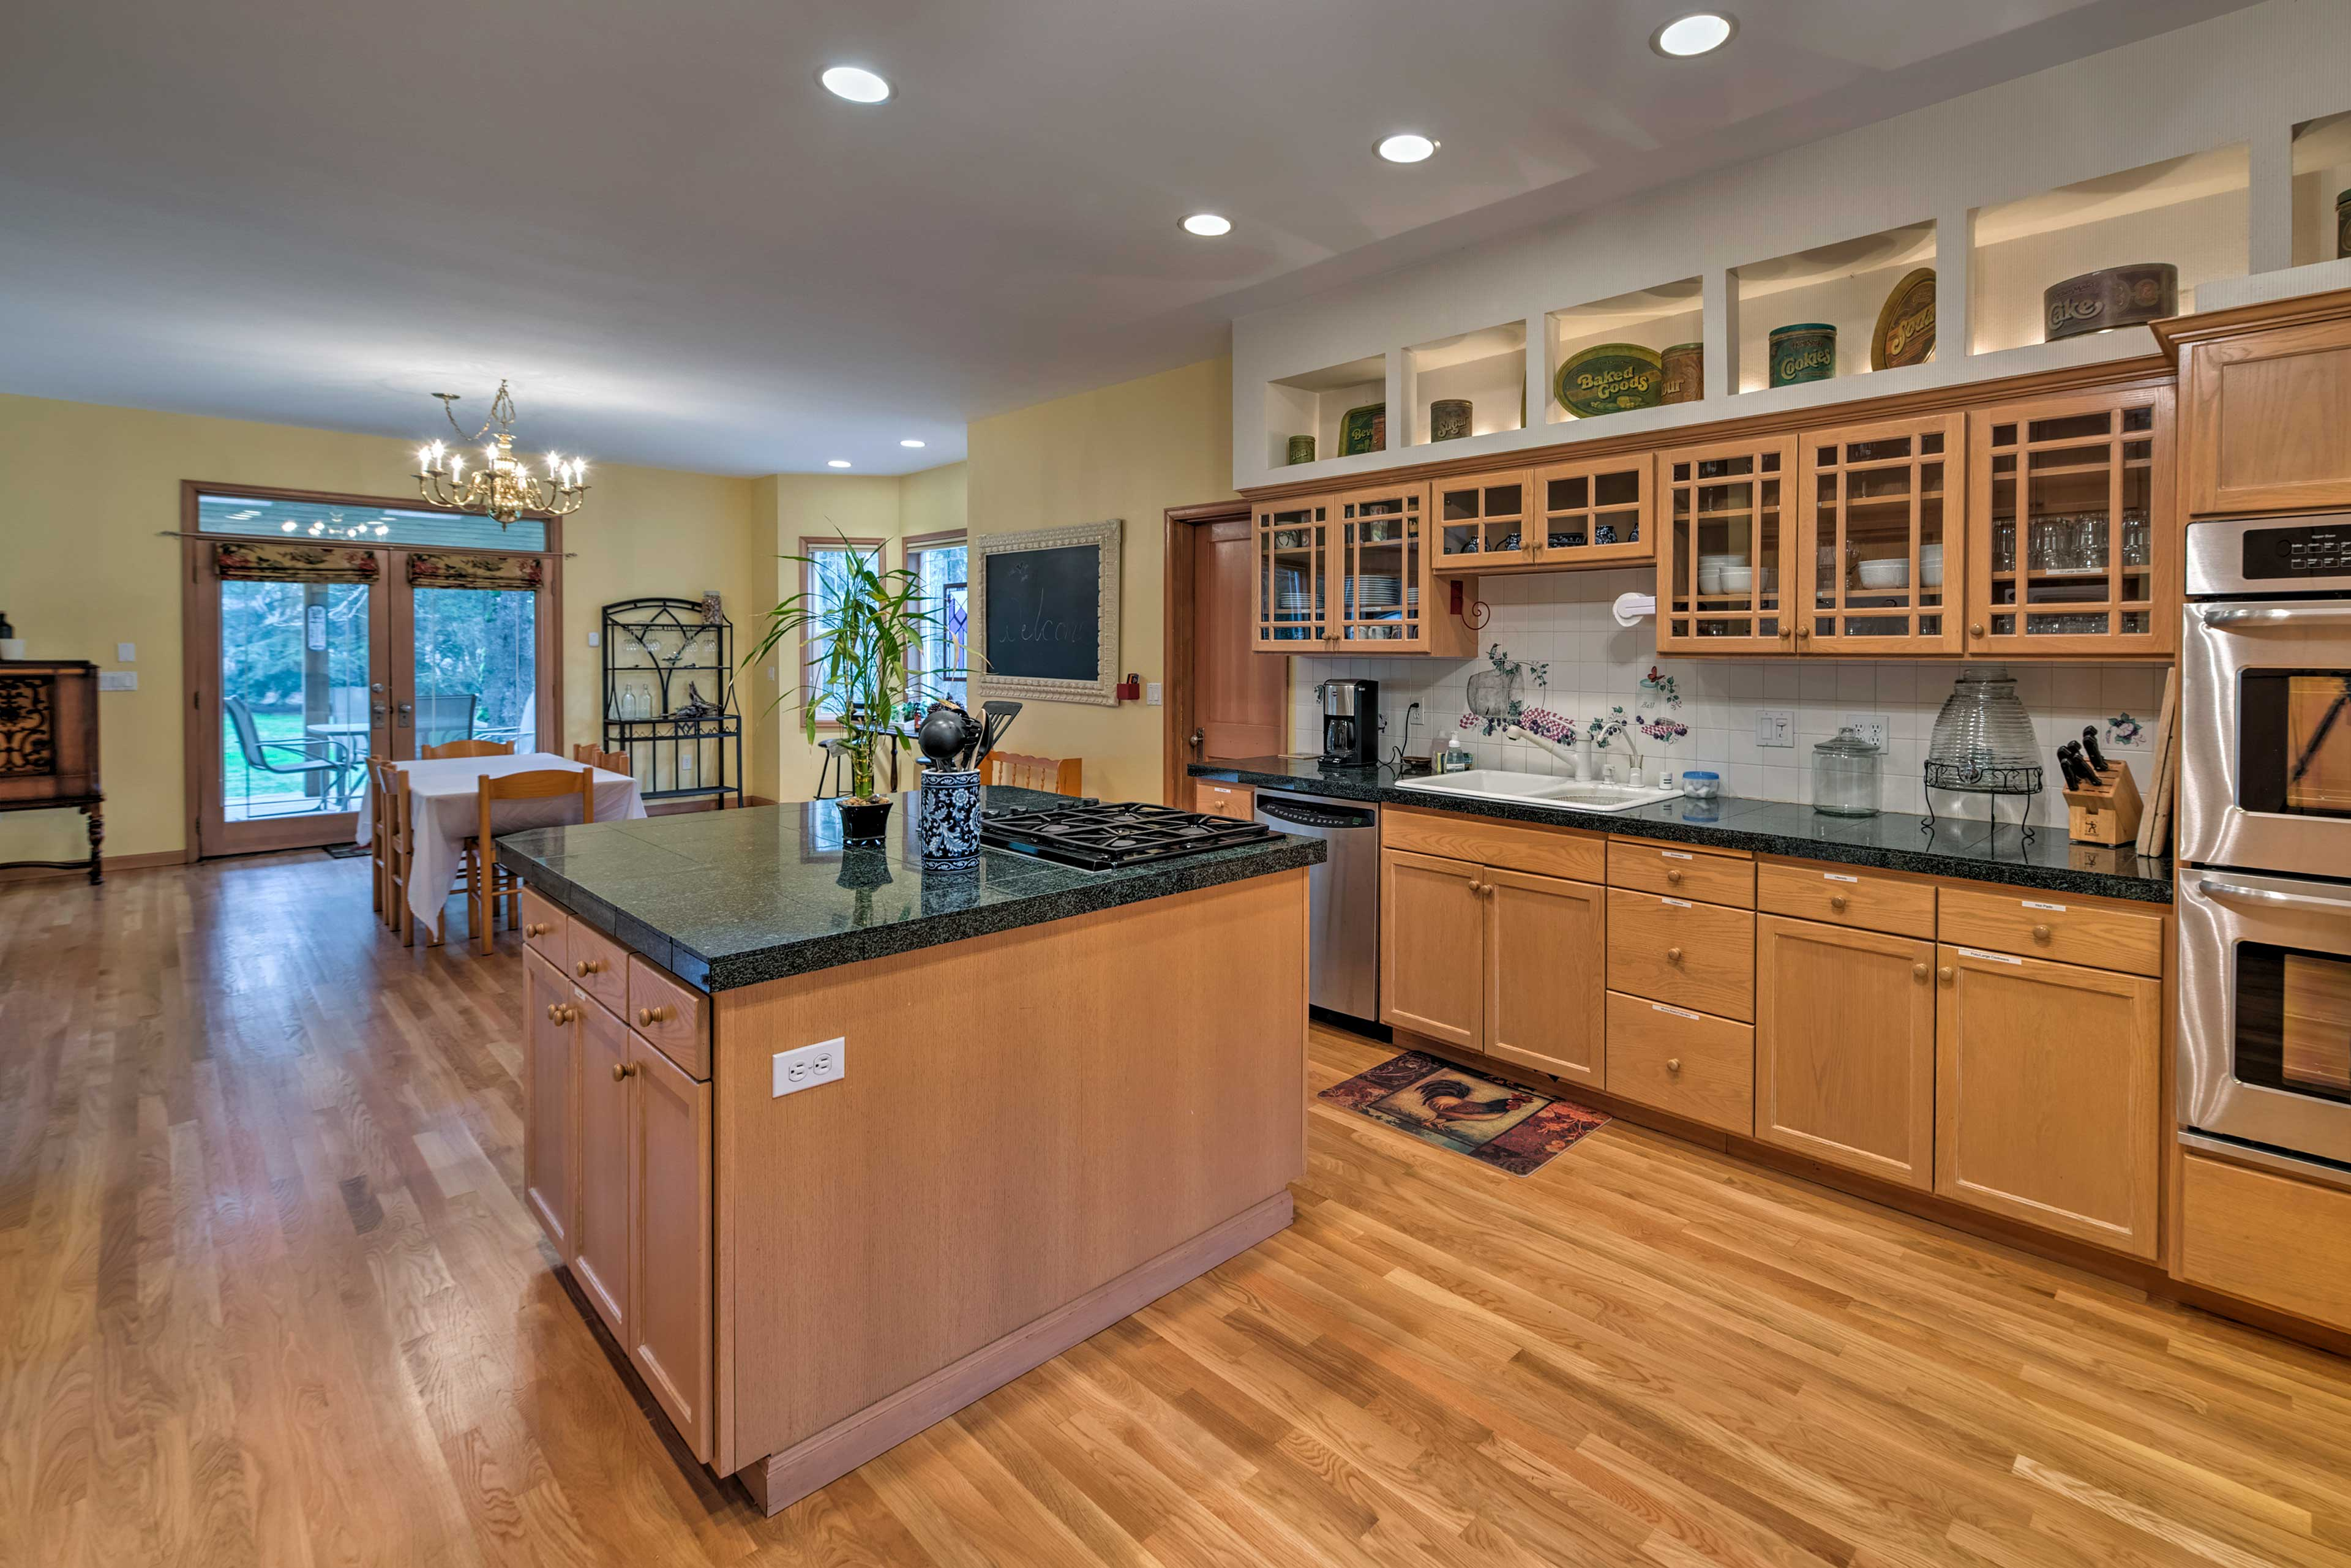 The kitchen has stainless steel appliances, granite counters, and an island.